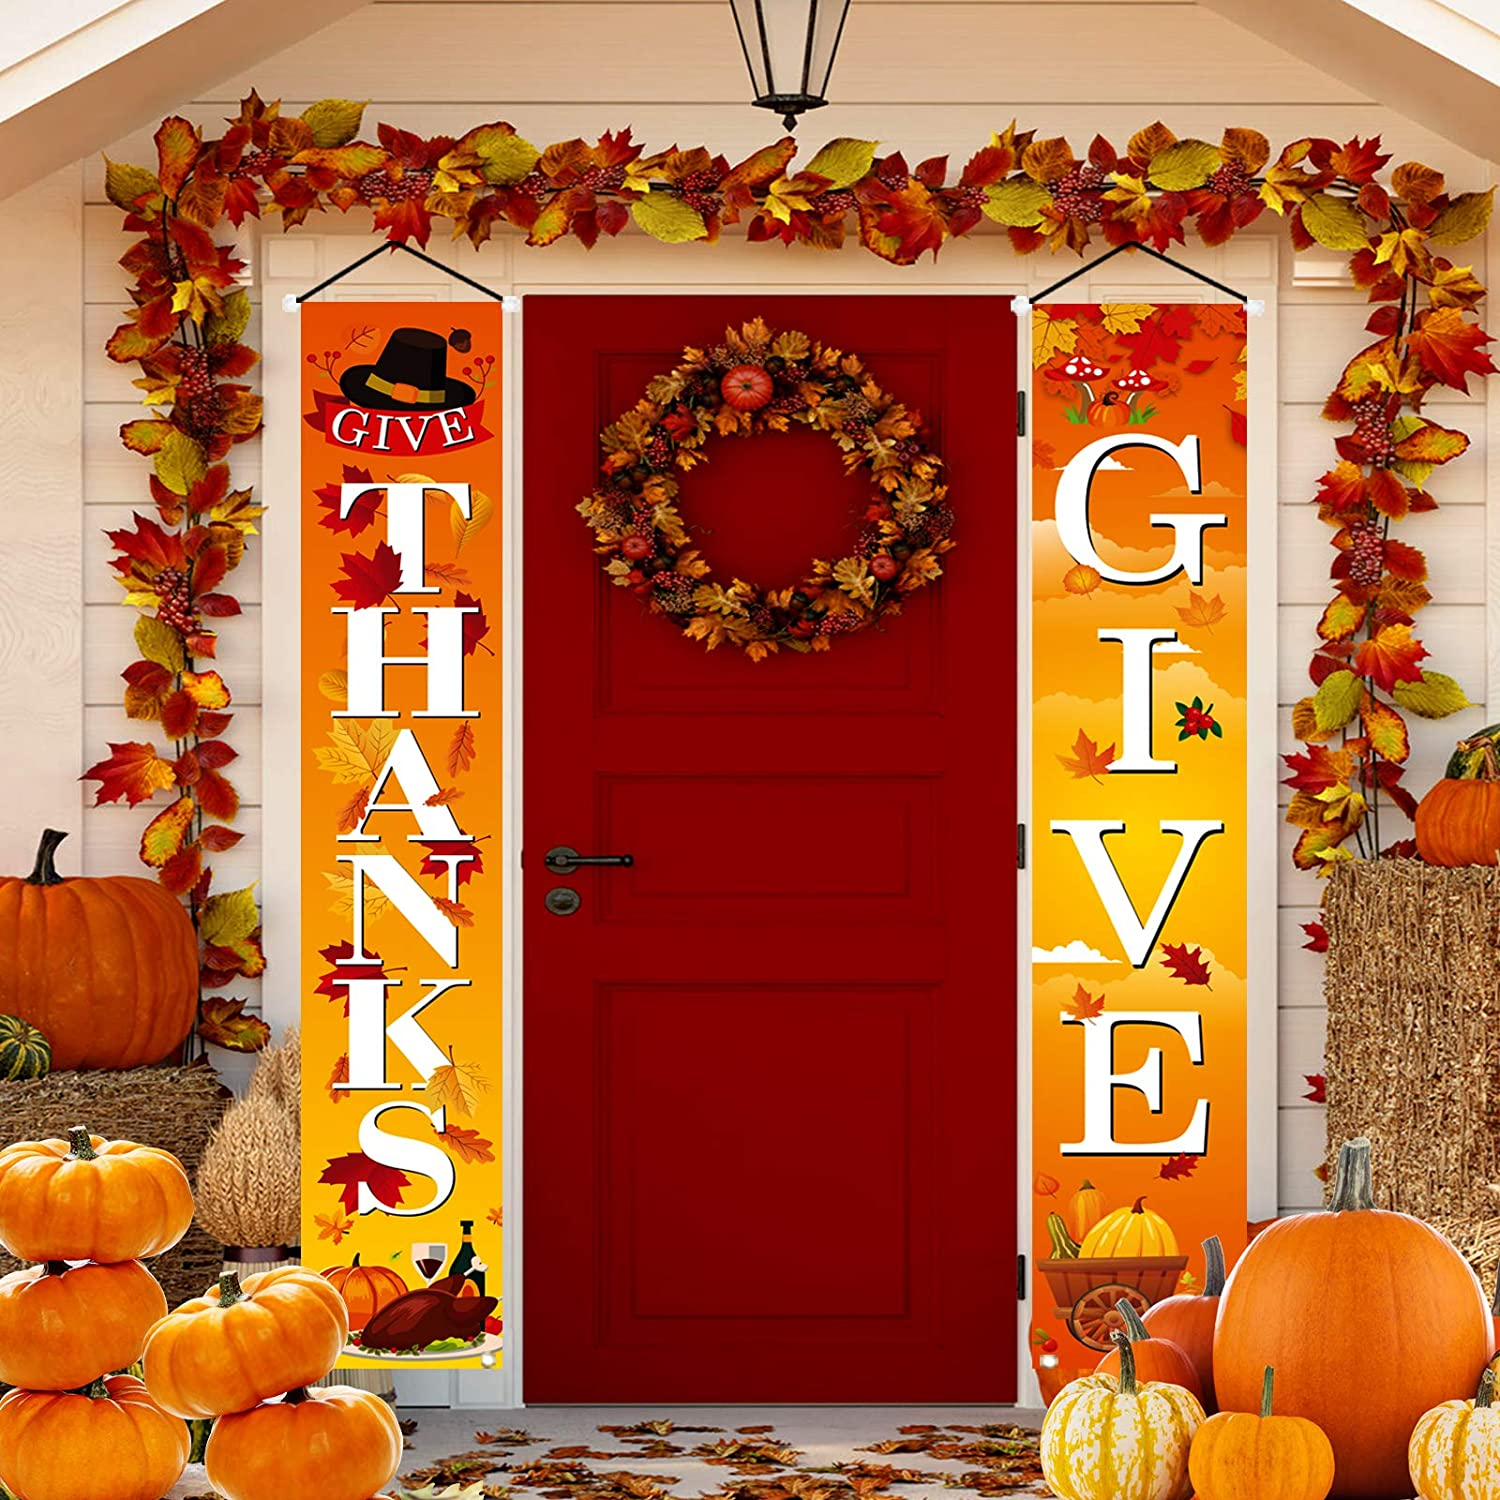 ULERSP Fall Harvest Outdoor Porch Sign Banner -Thanks Give for Front Door or Indoor Display Home Autumn Decor Party Thanksgiving Porch Decorations